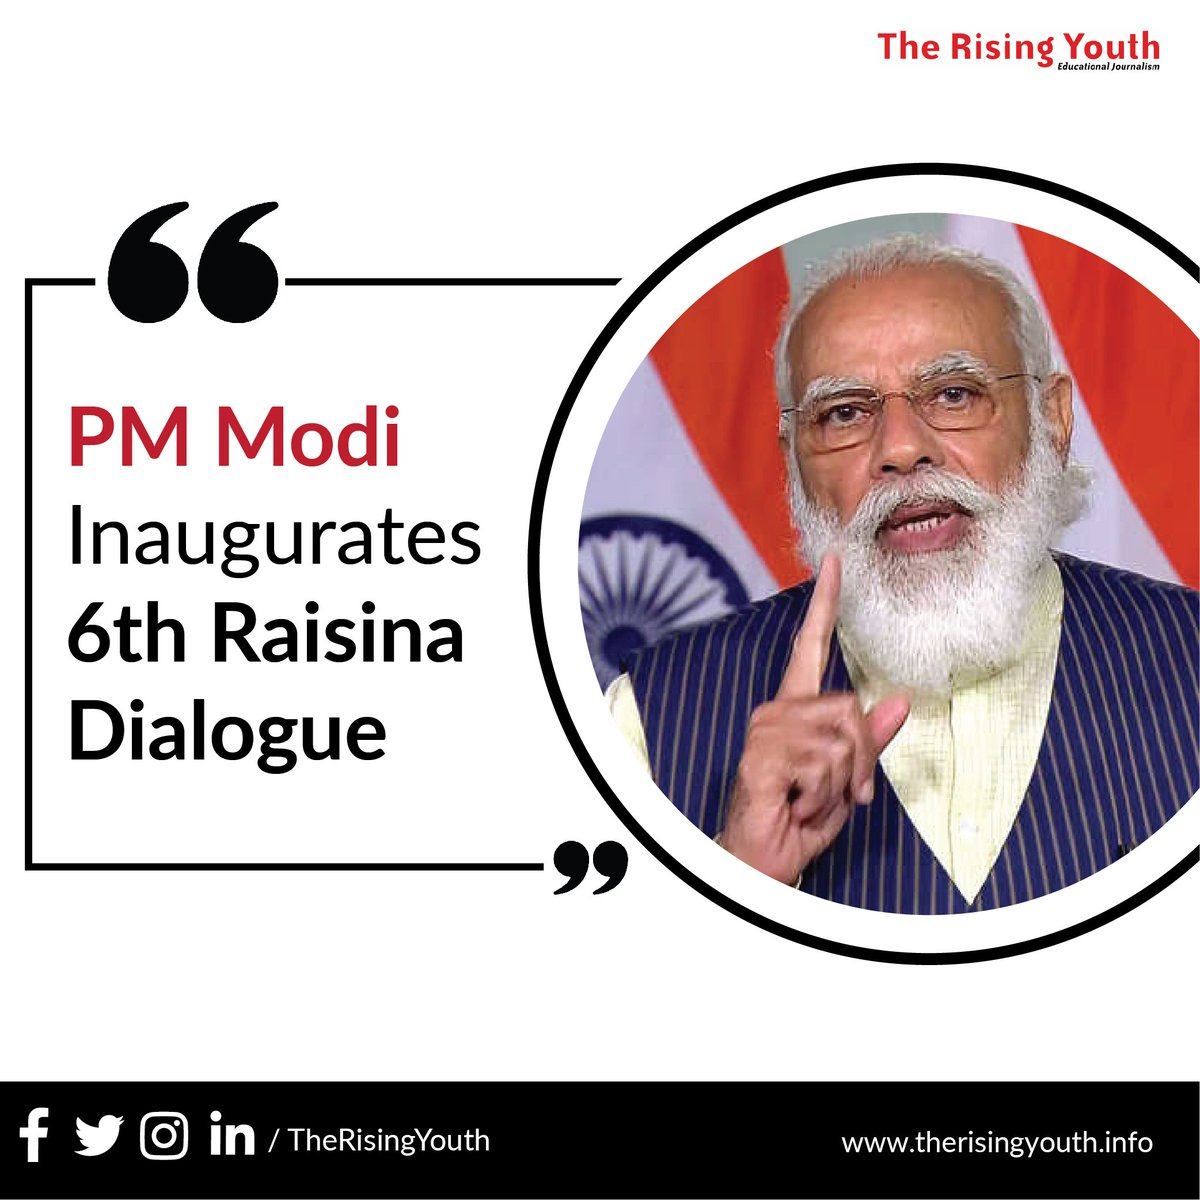 Swipe and learn more about The Raisina Dialouge 2021. #Raisina2021 #RaisinaDialogue2021 #RaisinaDialogue #viralworld #PMModi #India #thinktank #outbreak #Inauguration2021 #therisingyouth #yourvoicematters